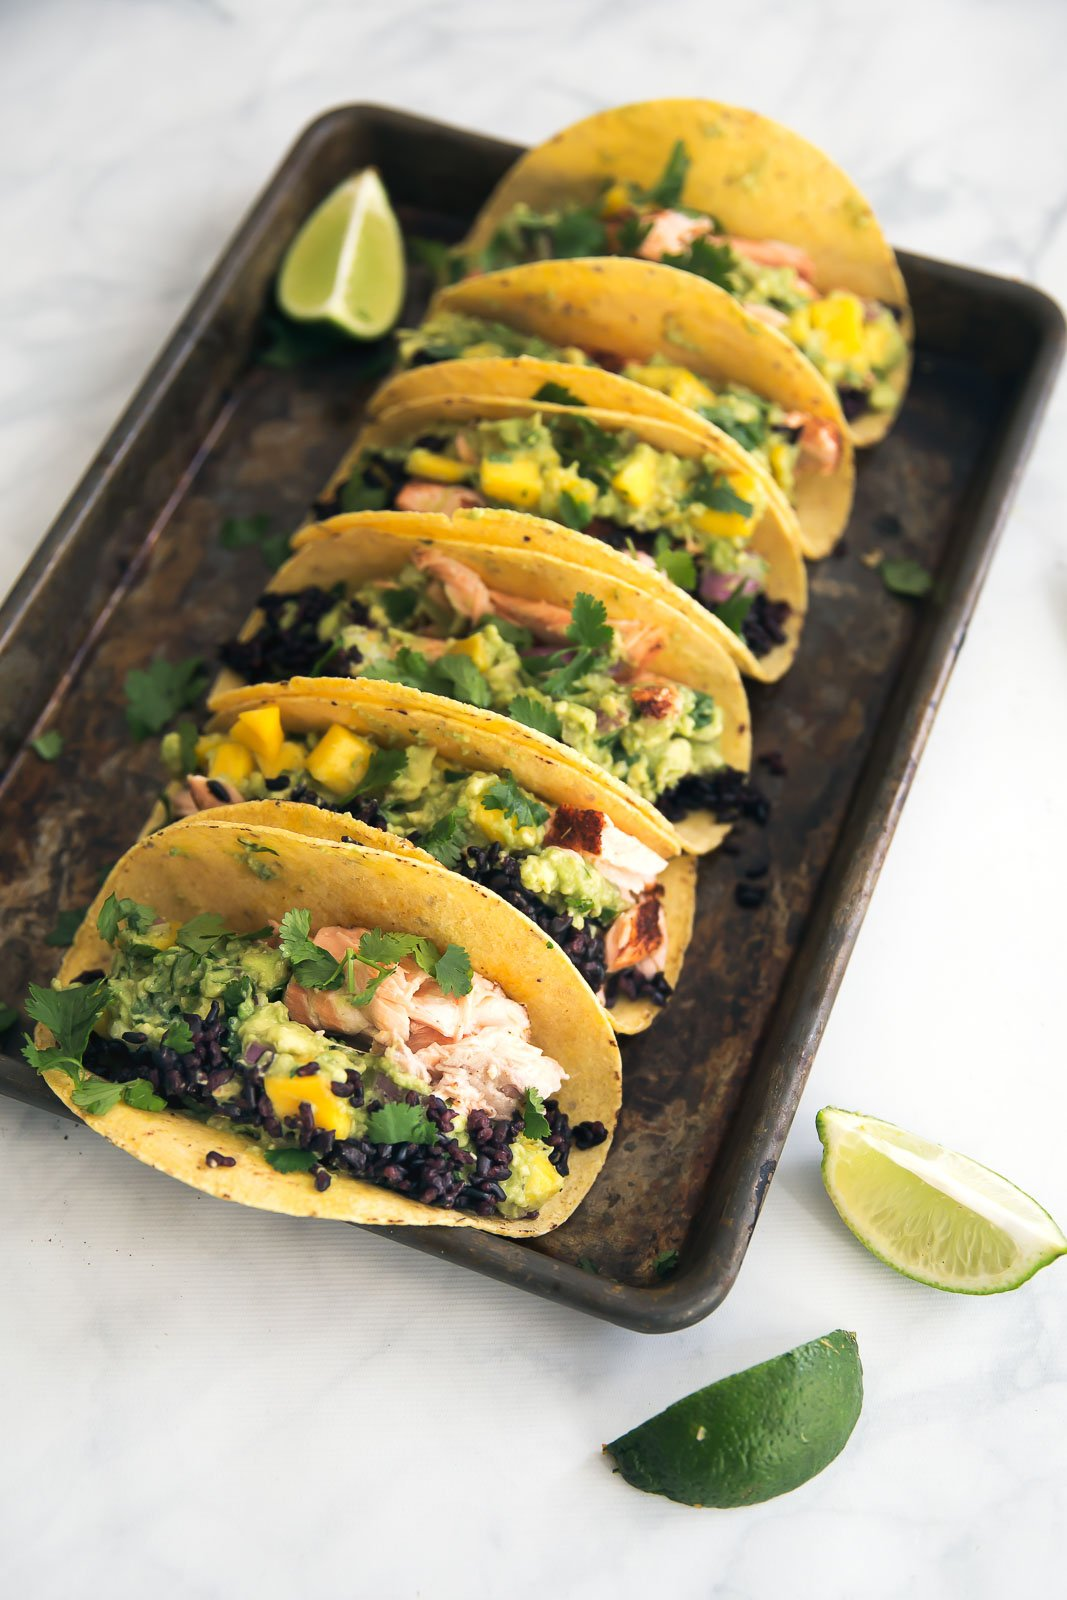 Salmon tacos with black rice and guacamole on a baking sheet